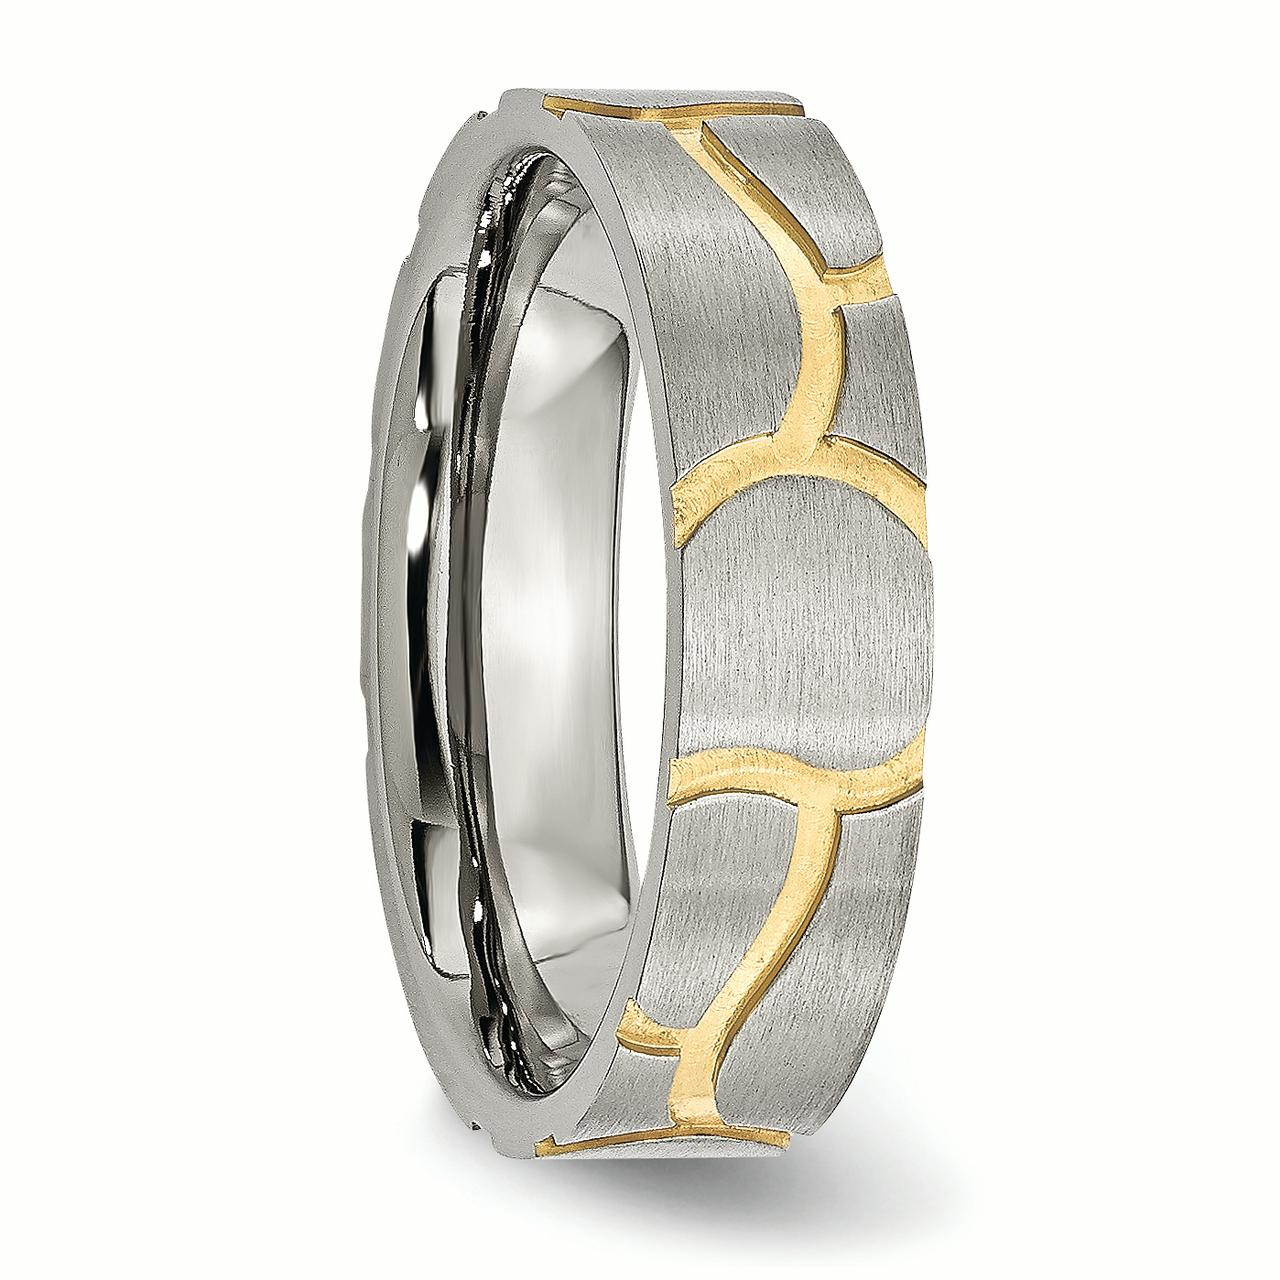 Stainless Steel Grooved Yellow Plated Ladies 6mm Brushed Wedding Ring Band Size 8.00 Fancy Fashion Jewelry Gifts For Women For Her - image 5 de 6